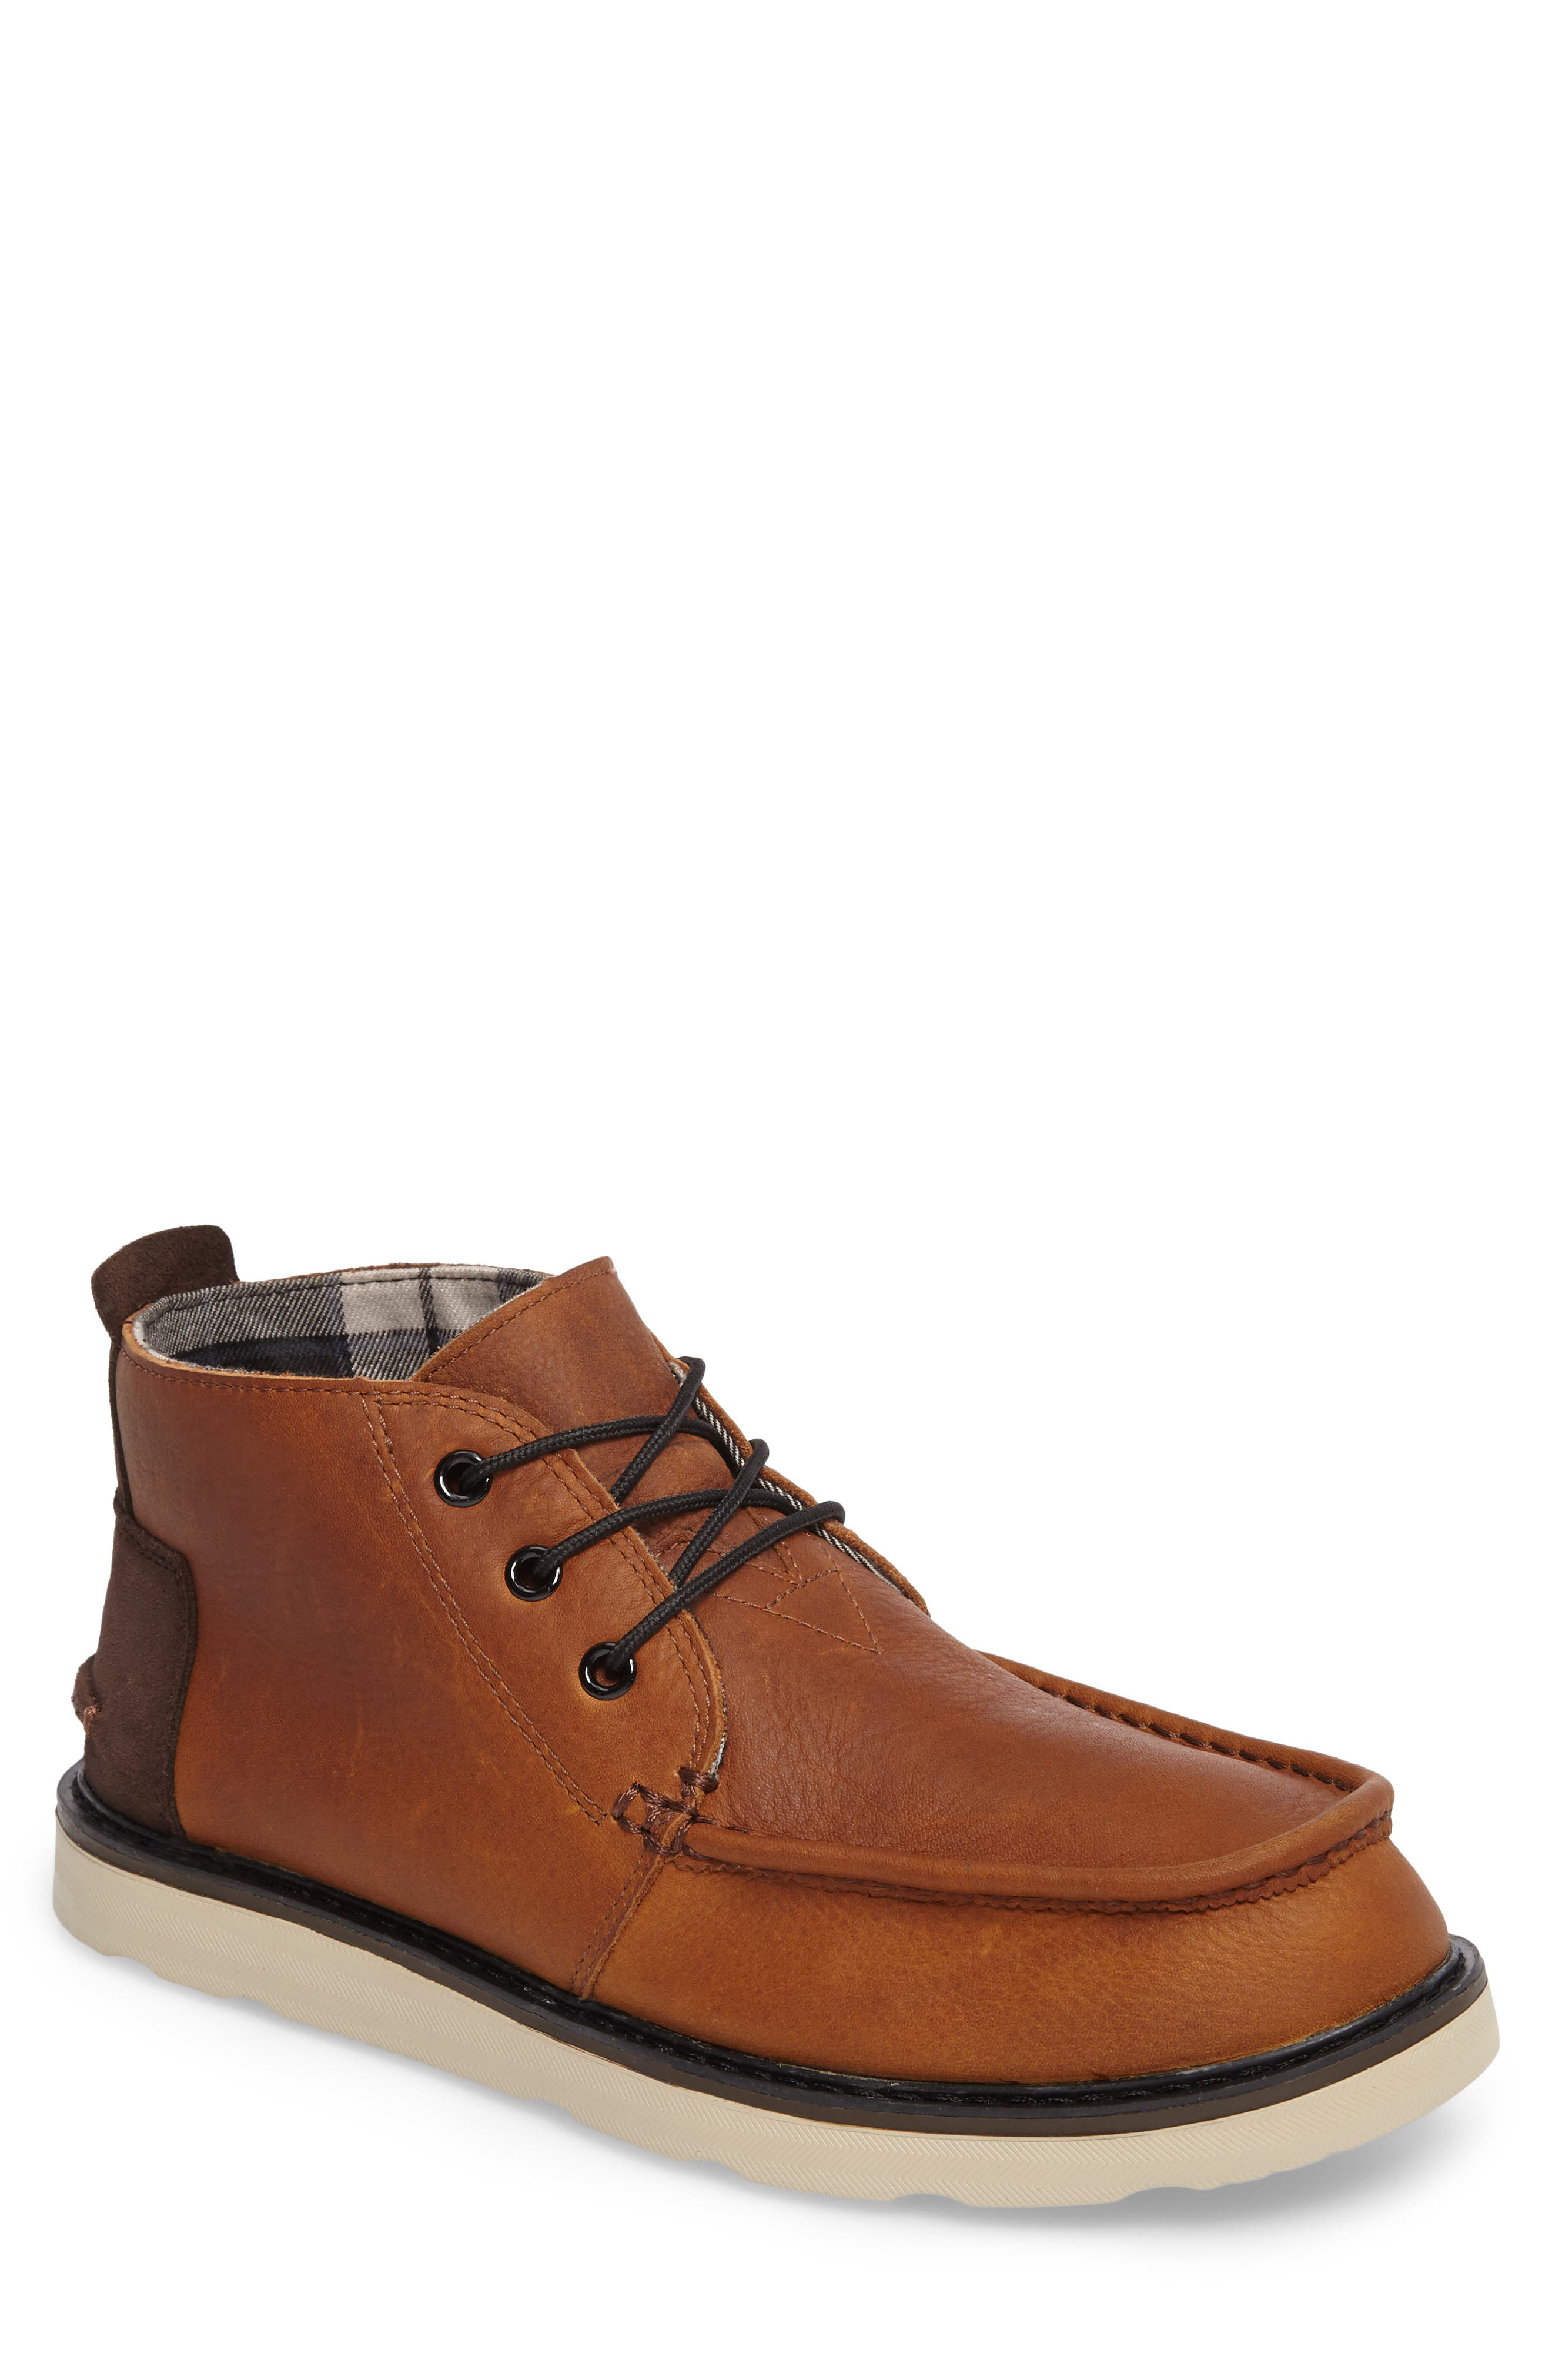 Main Image - TOMS Waterproof Chukka Boot (Men)